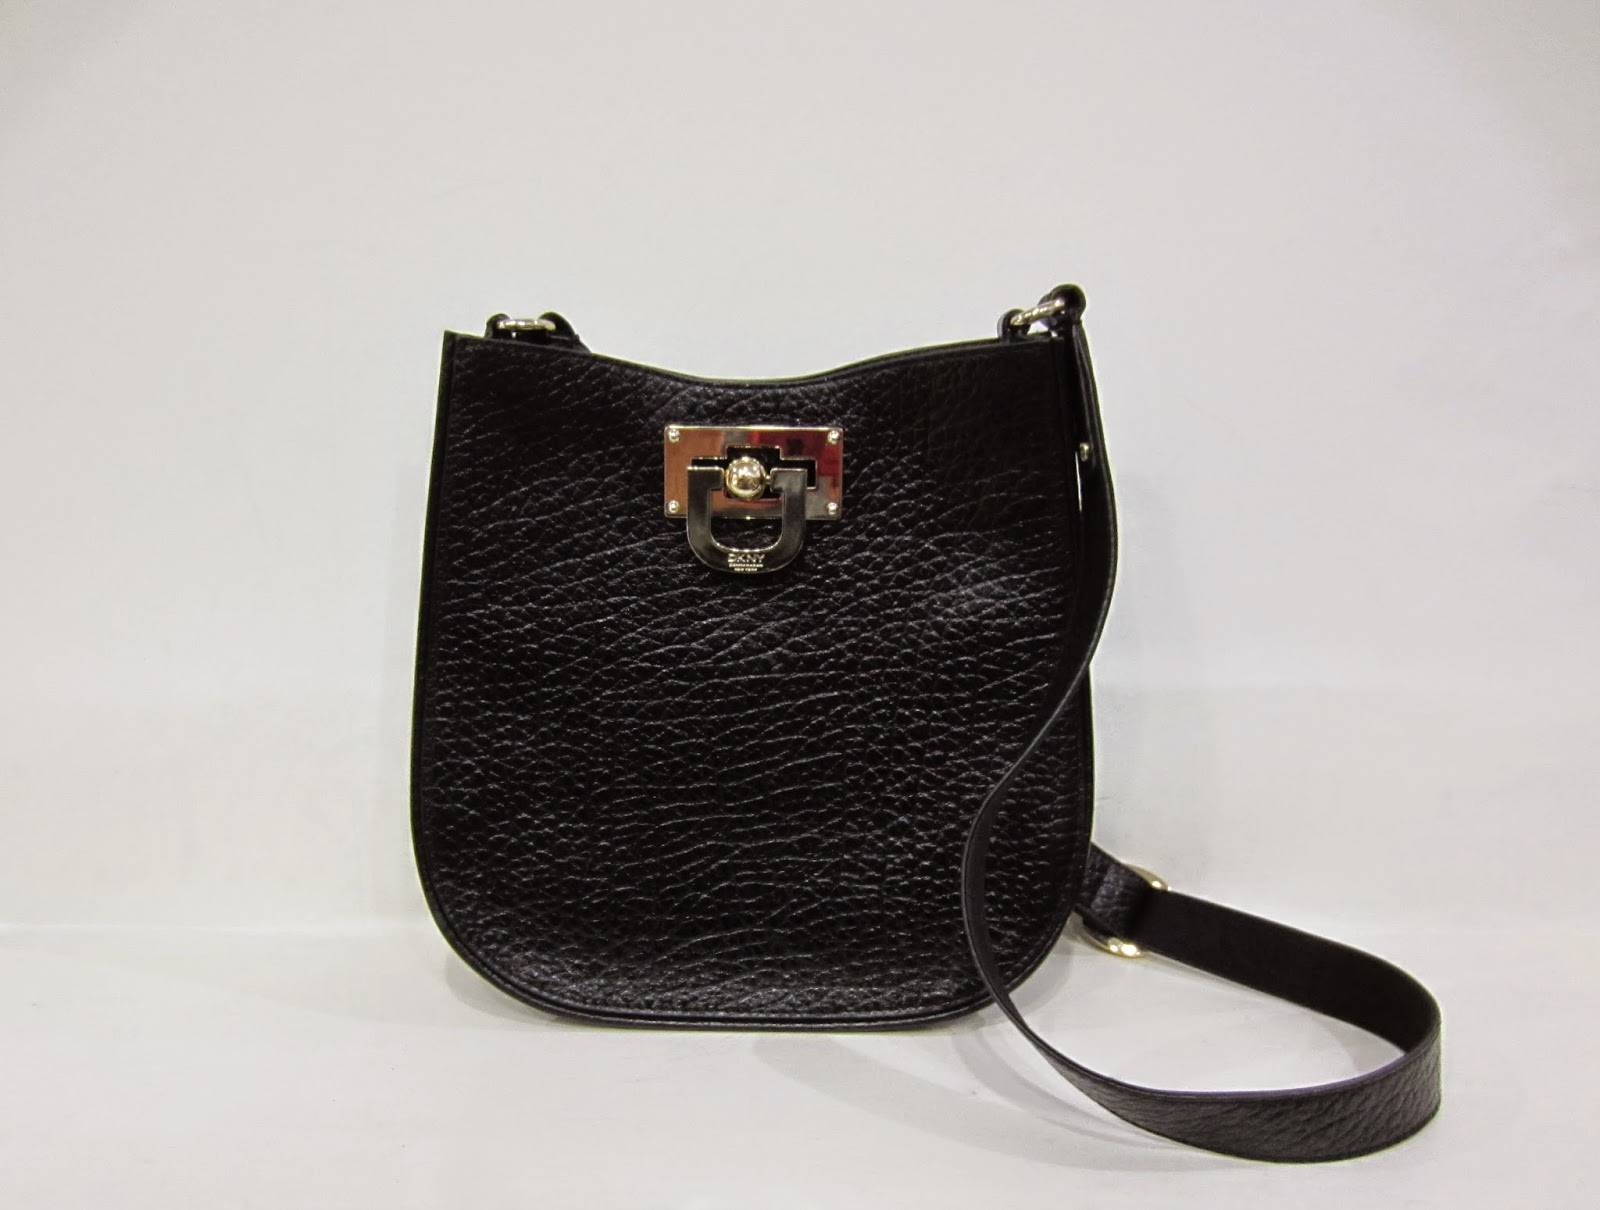 DKNY Black Leather Shoulder Bag with Gold Hardware